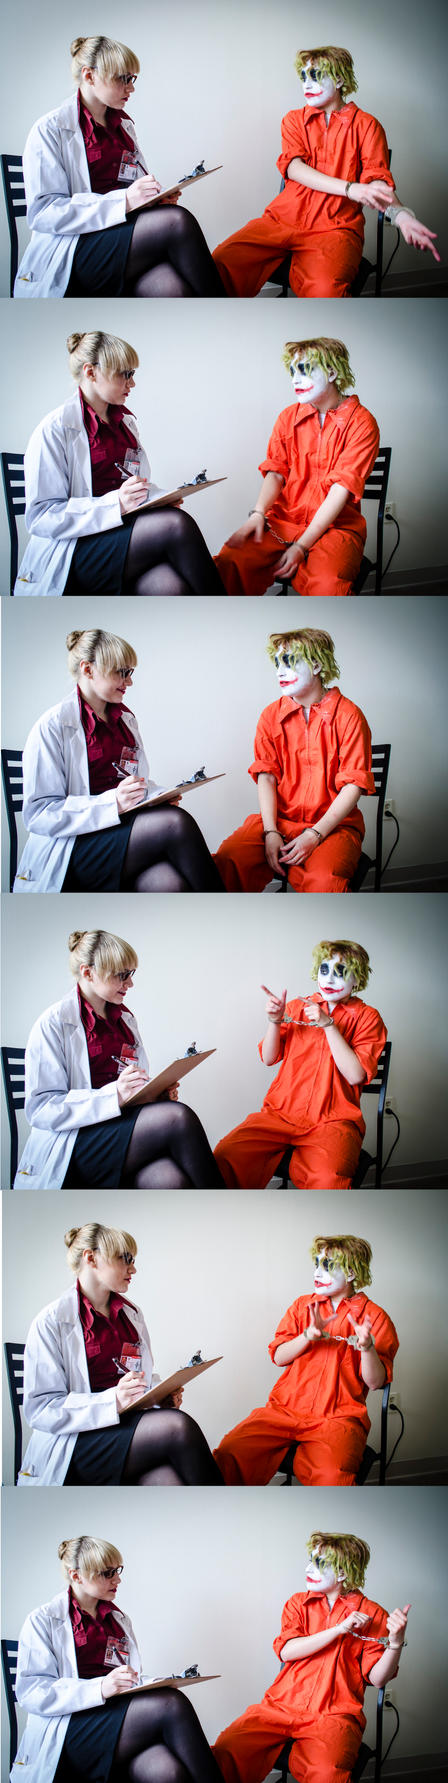 Dr. Harleen Quinzel overseeing Patient 4479 [Pt 3] by NabCosplay